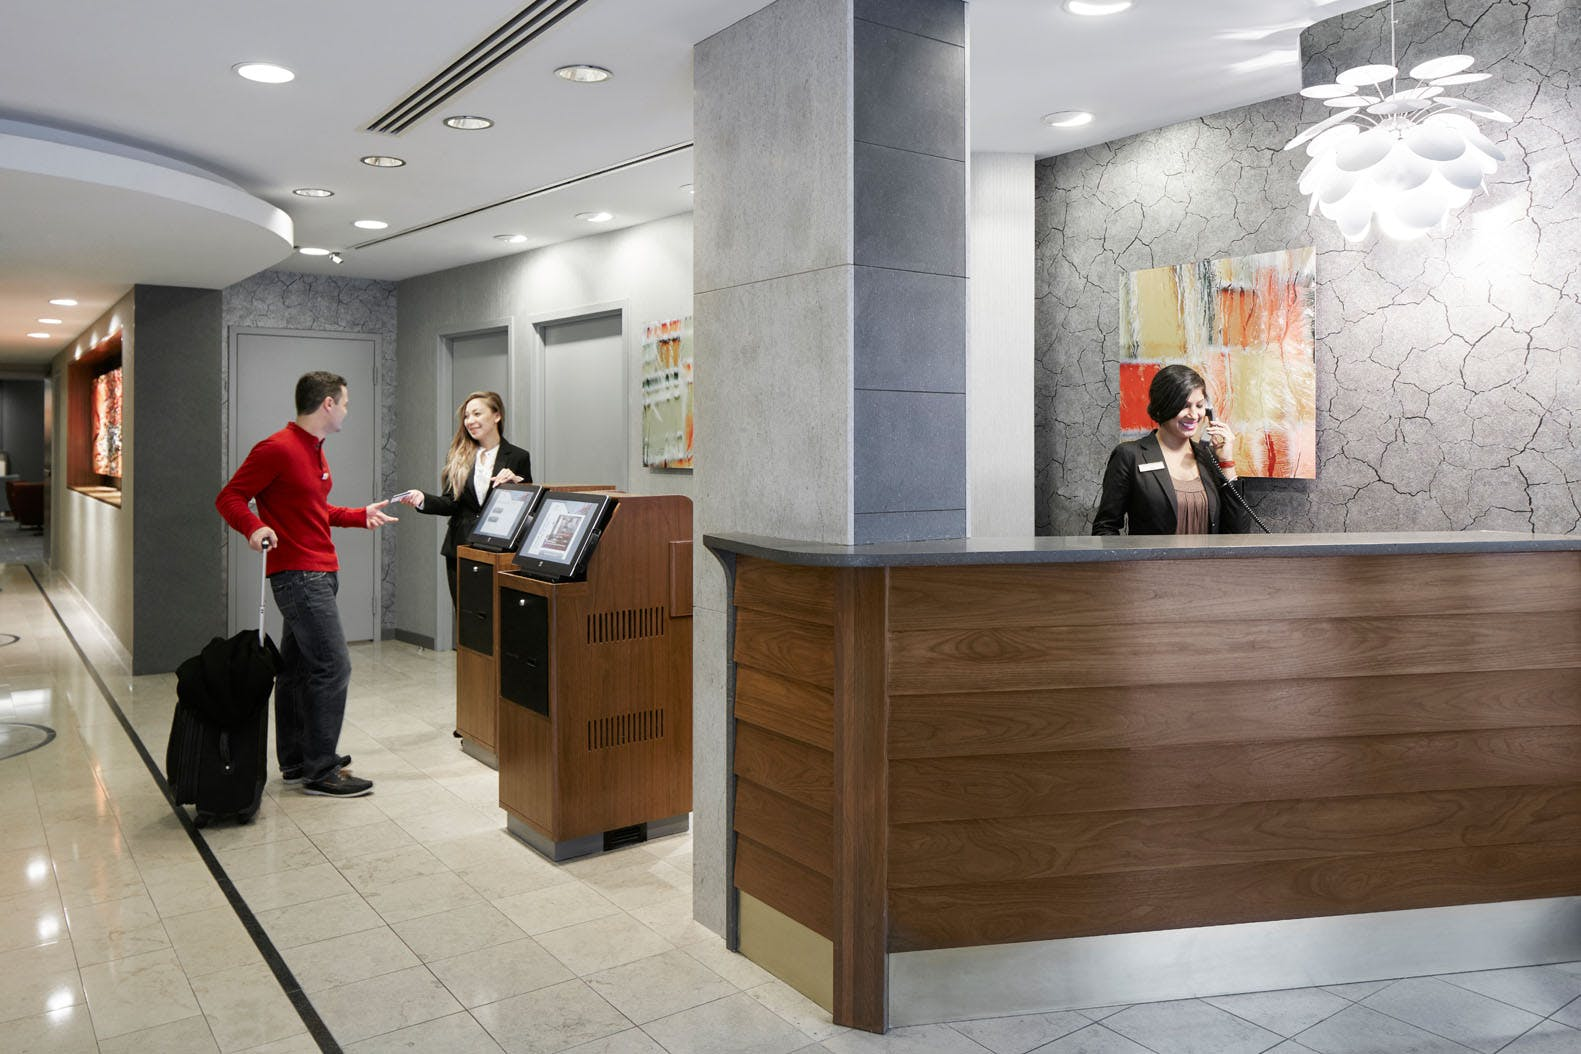 Member Service Desk at Club Quarters Hotel in San Francisco